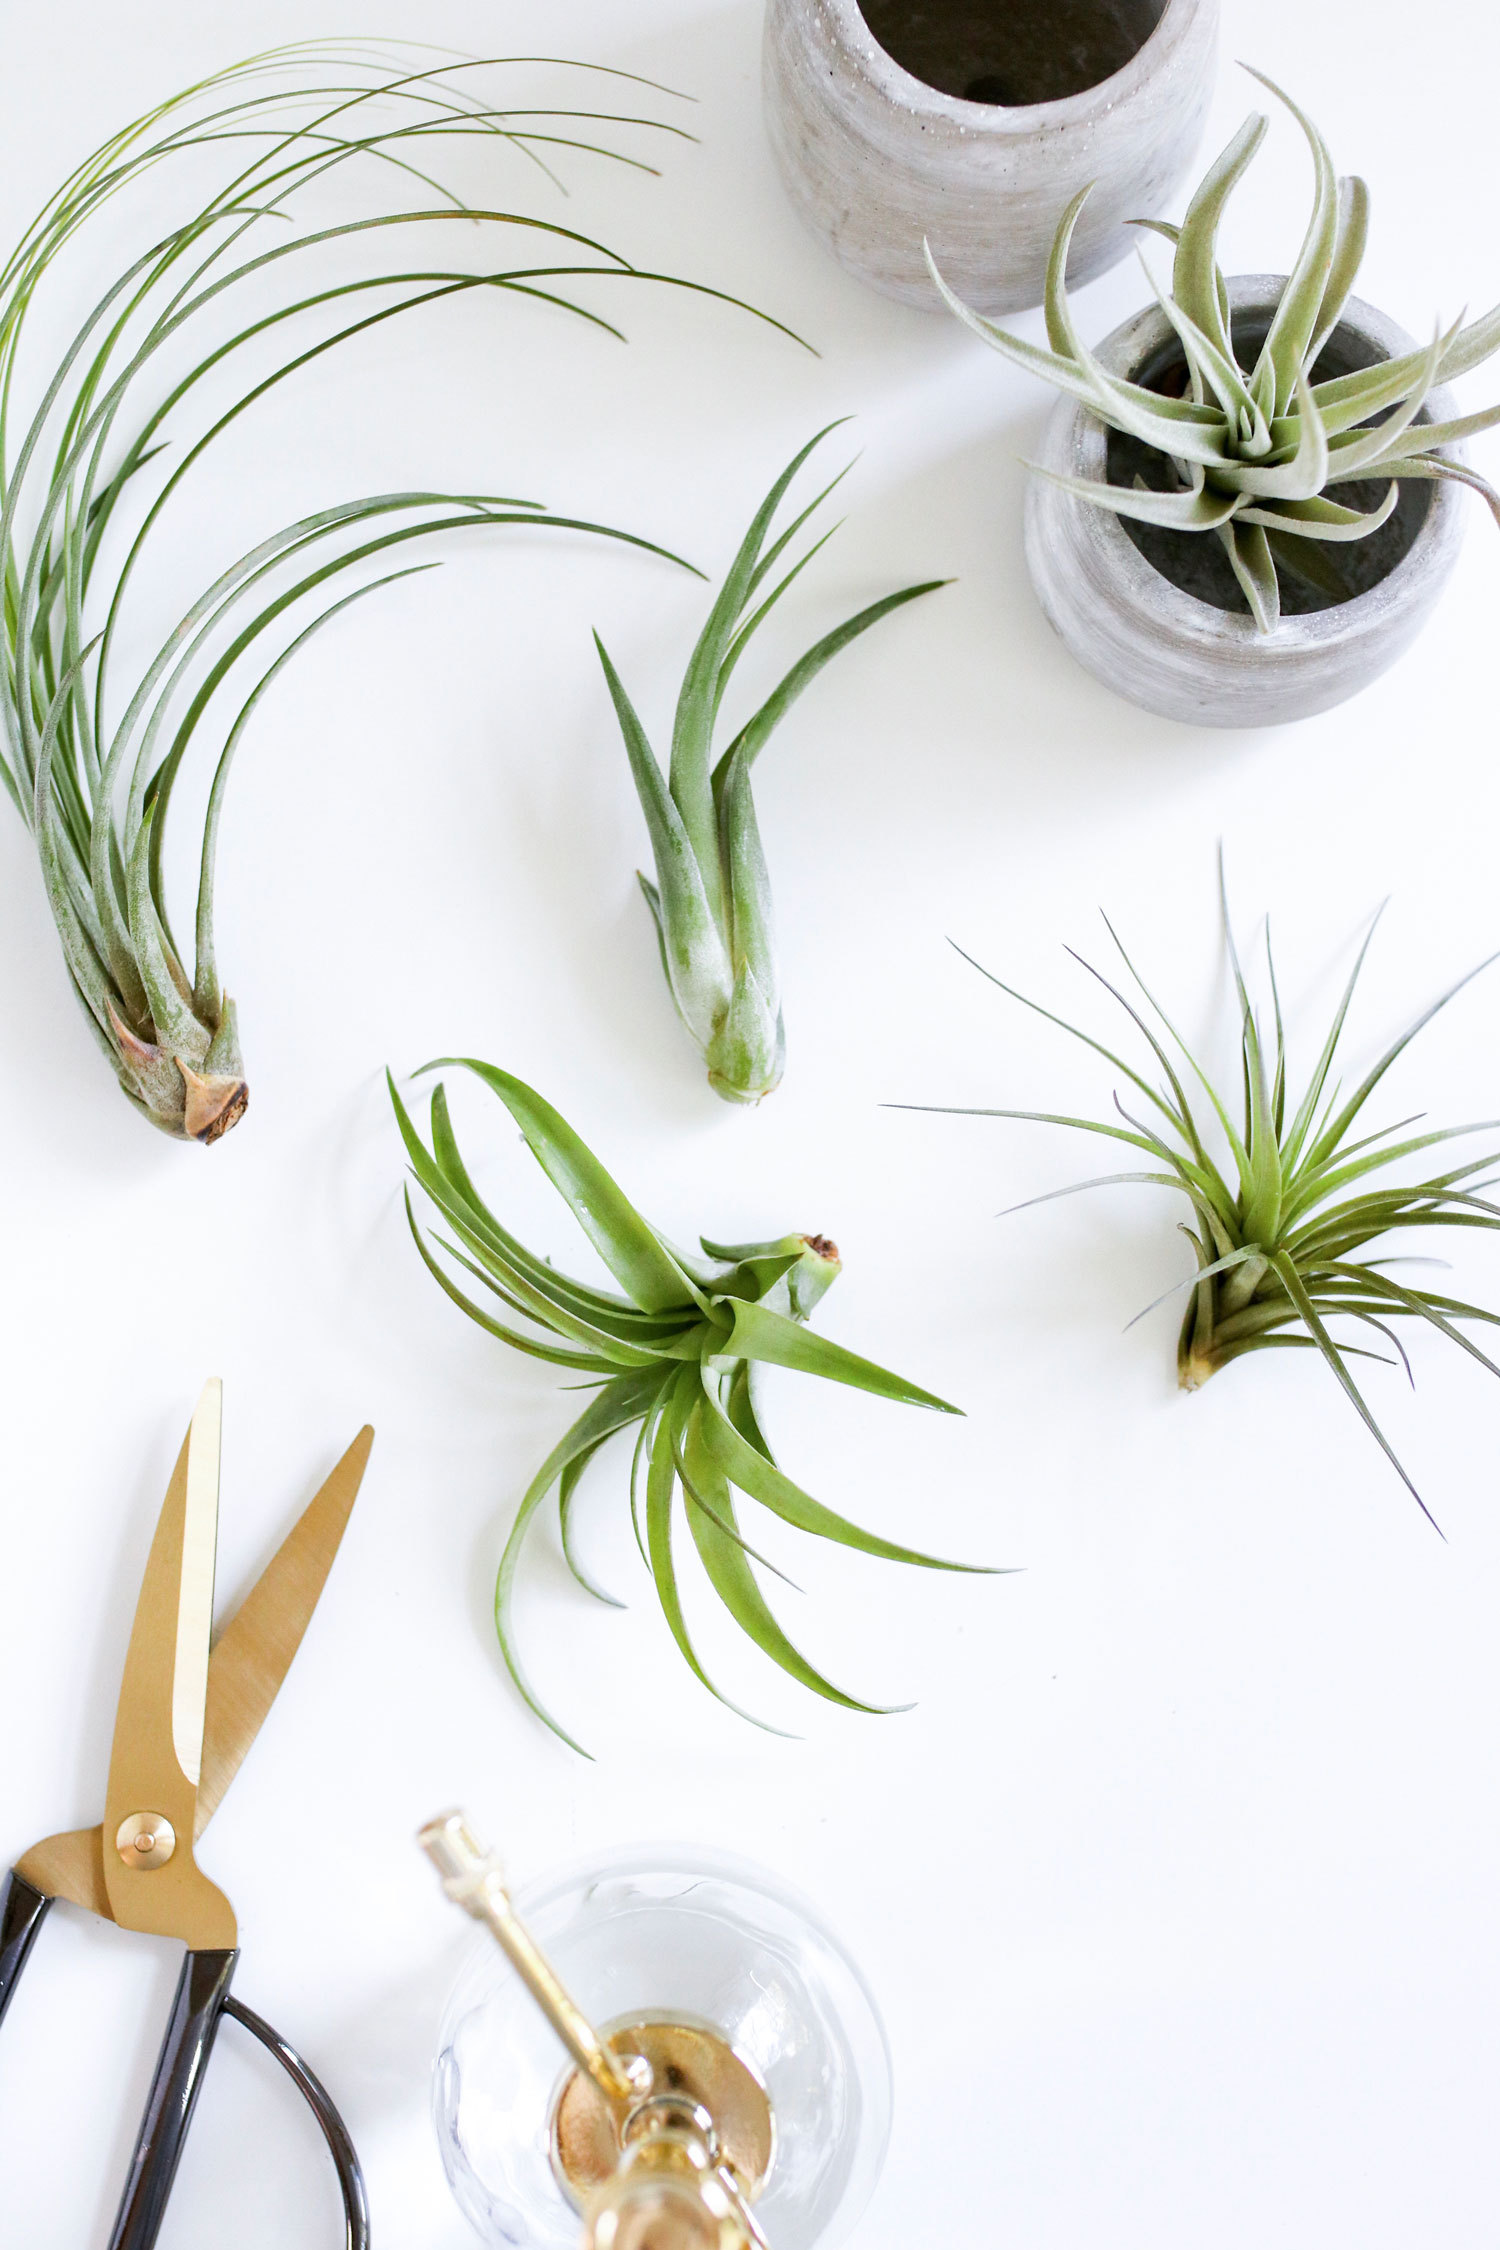 How to prune air plants